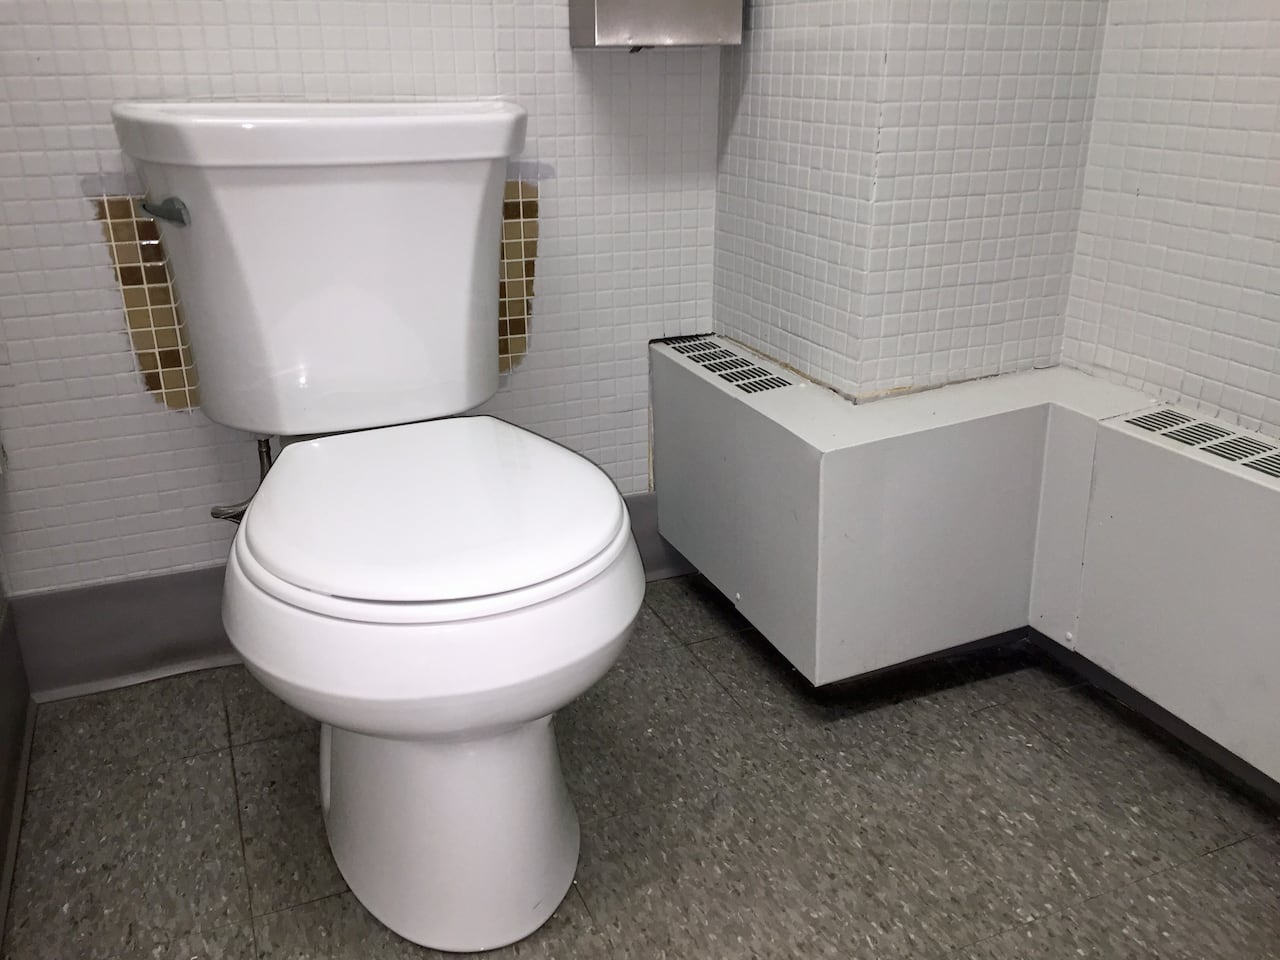 Businesses Struggle To Balance Public Access To Toilets With Drug Use Cleanliness Cbc News